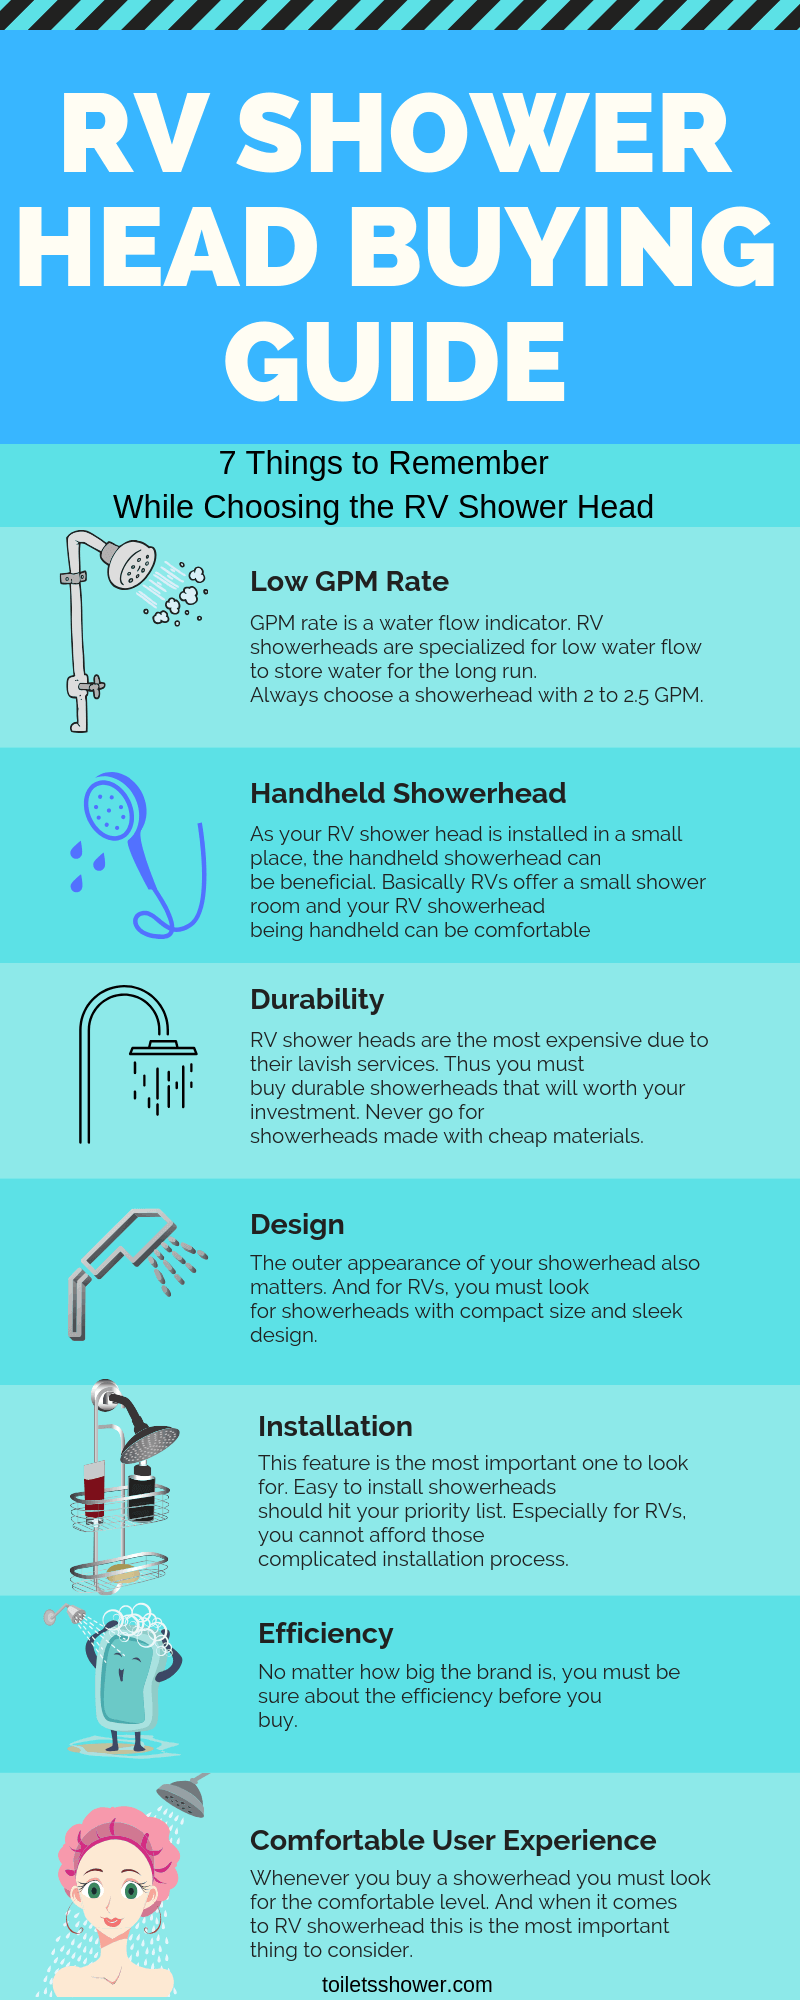 RV Shower Head Buying Guide Infographic